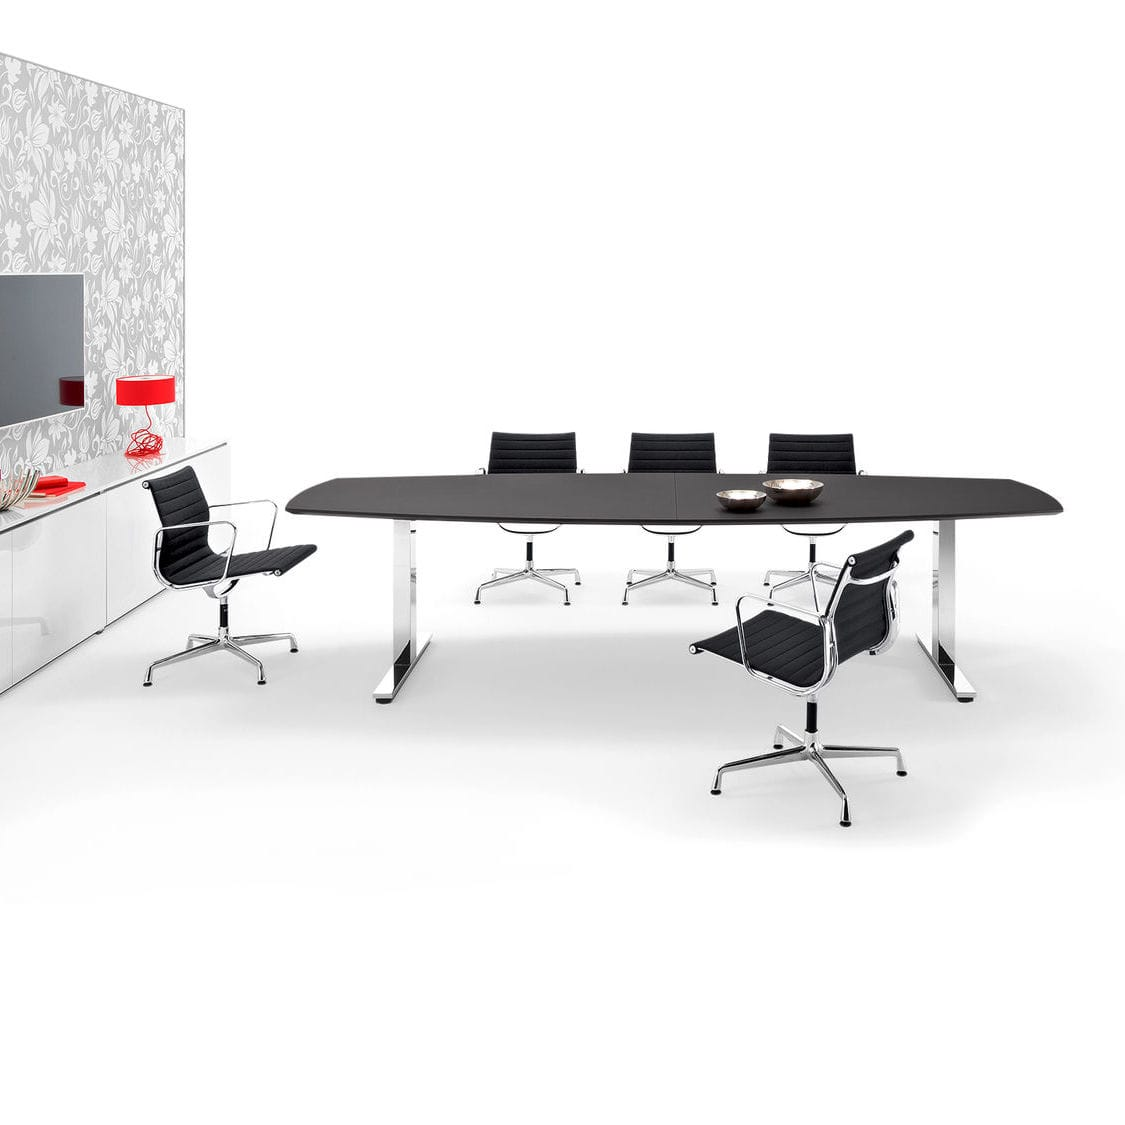 Team 1 Büromöbel Contemporary Boardroom Table Metal Mdf Wood Veneer Winea Pro Wini Büromöbel Georg Schmidt Gmbh Co Kg